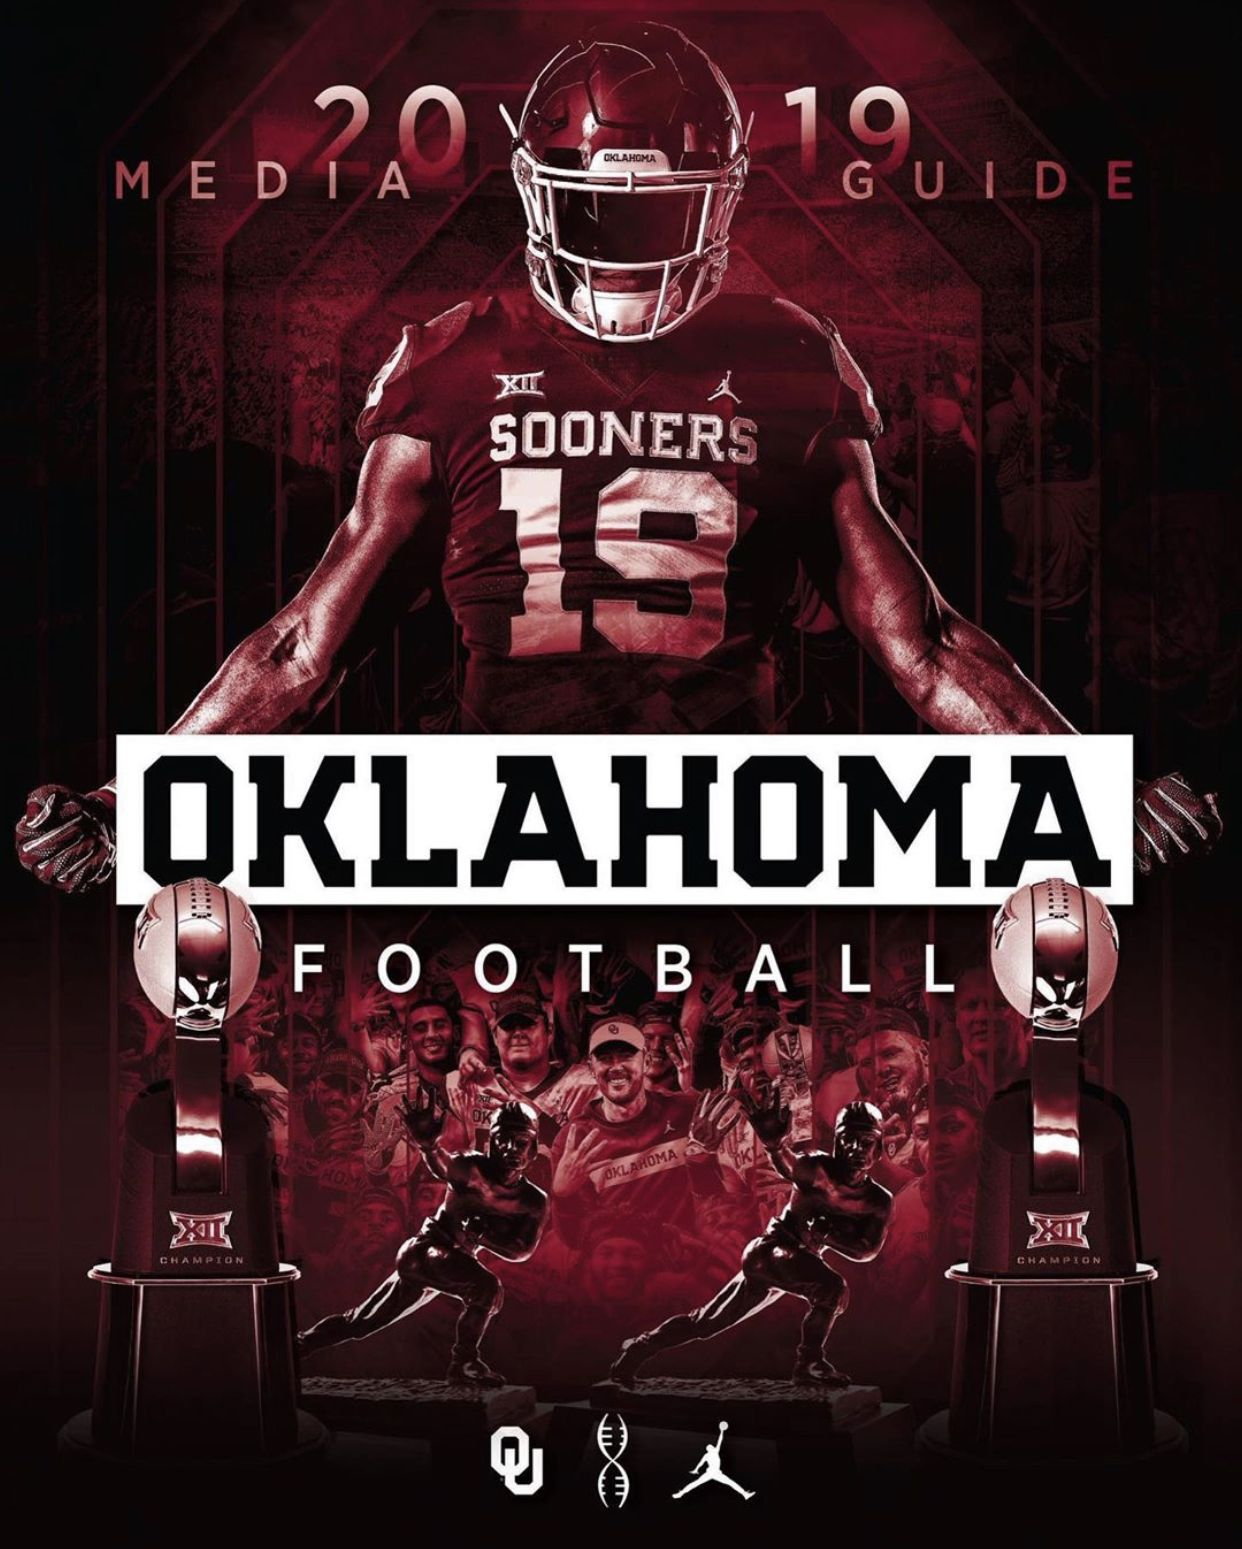 Pin by Michele Thompson on Oklahoma football | Oklahoma ...